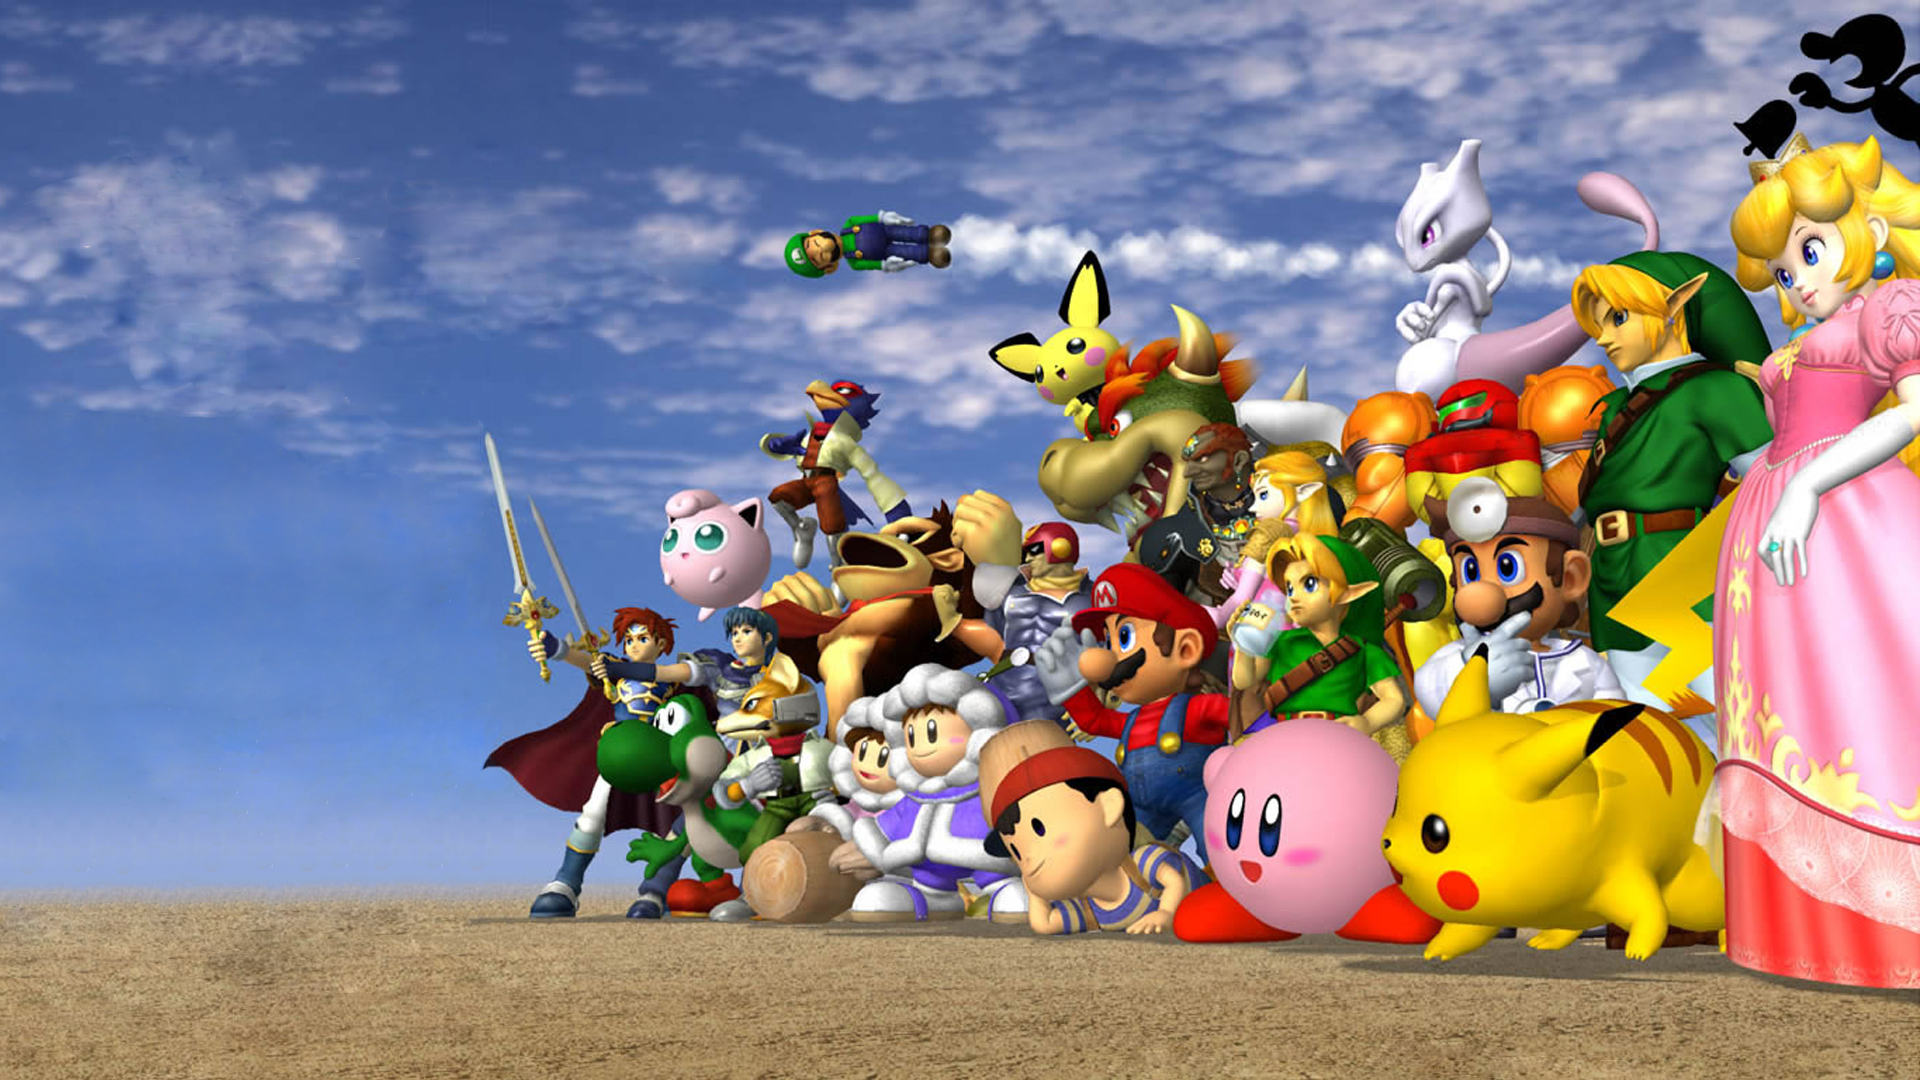 Interesting Video Game HDQ Images Collection, High Definition